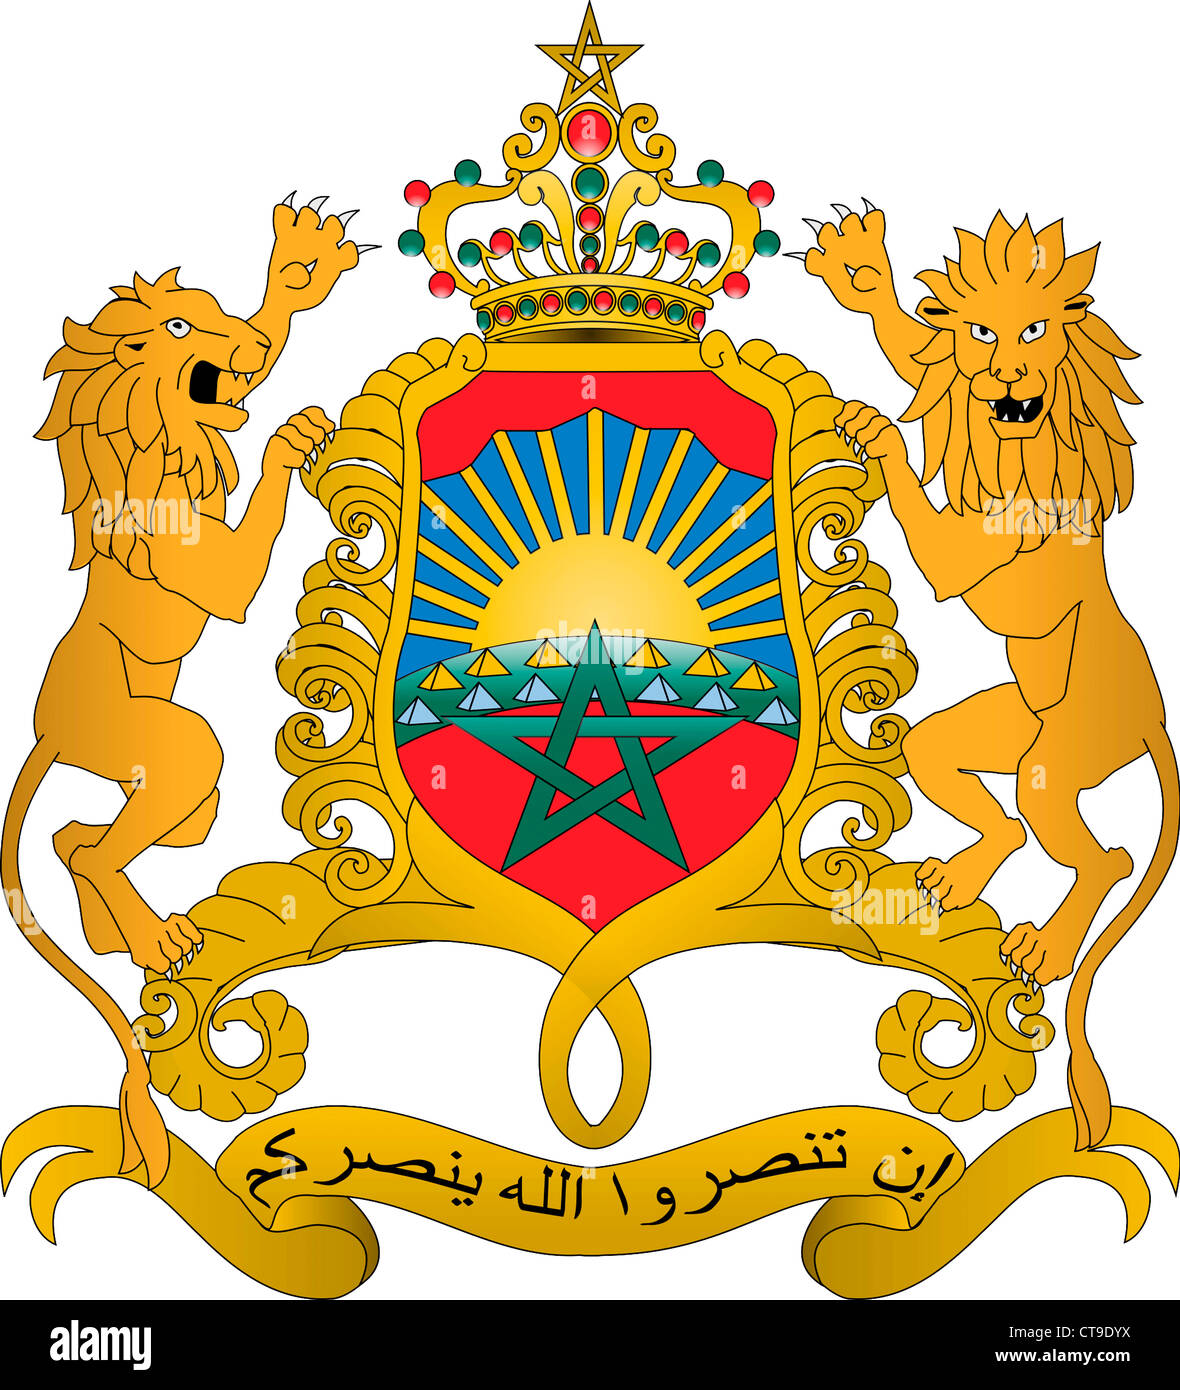 Coat of arms of Morocco Stock Photo, Royalty Free Image: 49381022 ...